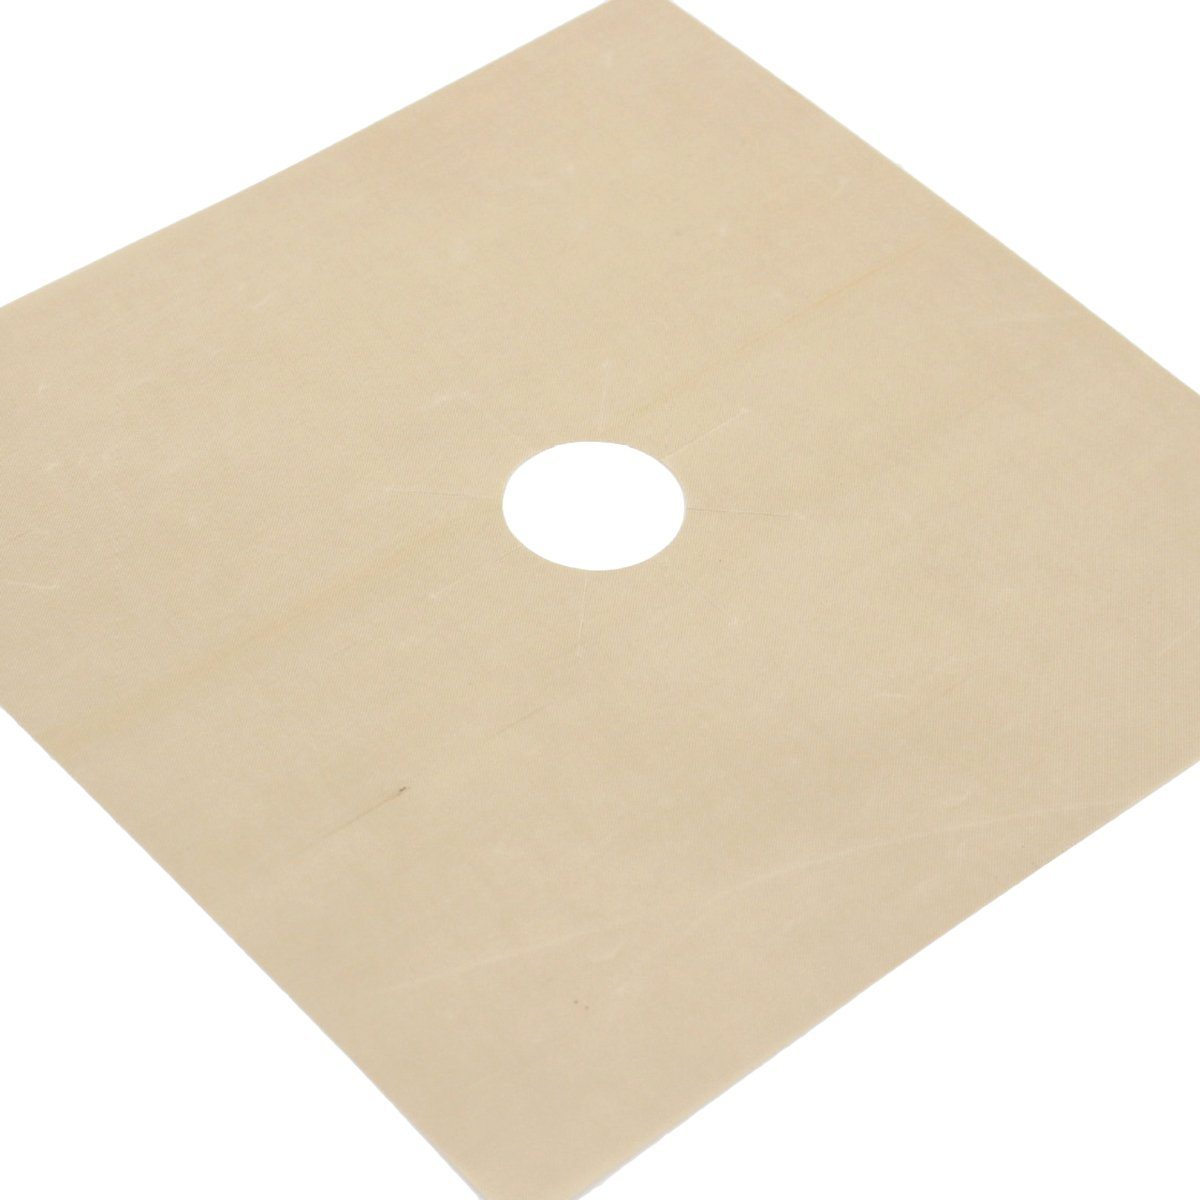 1pcs Universal Heavy Duty Oven Liner Gas Hob Protector Sheets (Beige) by BESTONZON (Image #4)